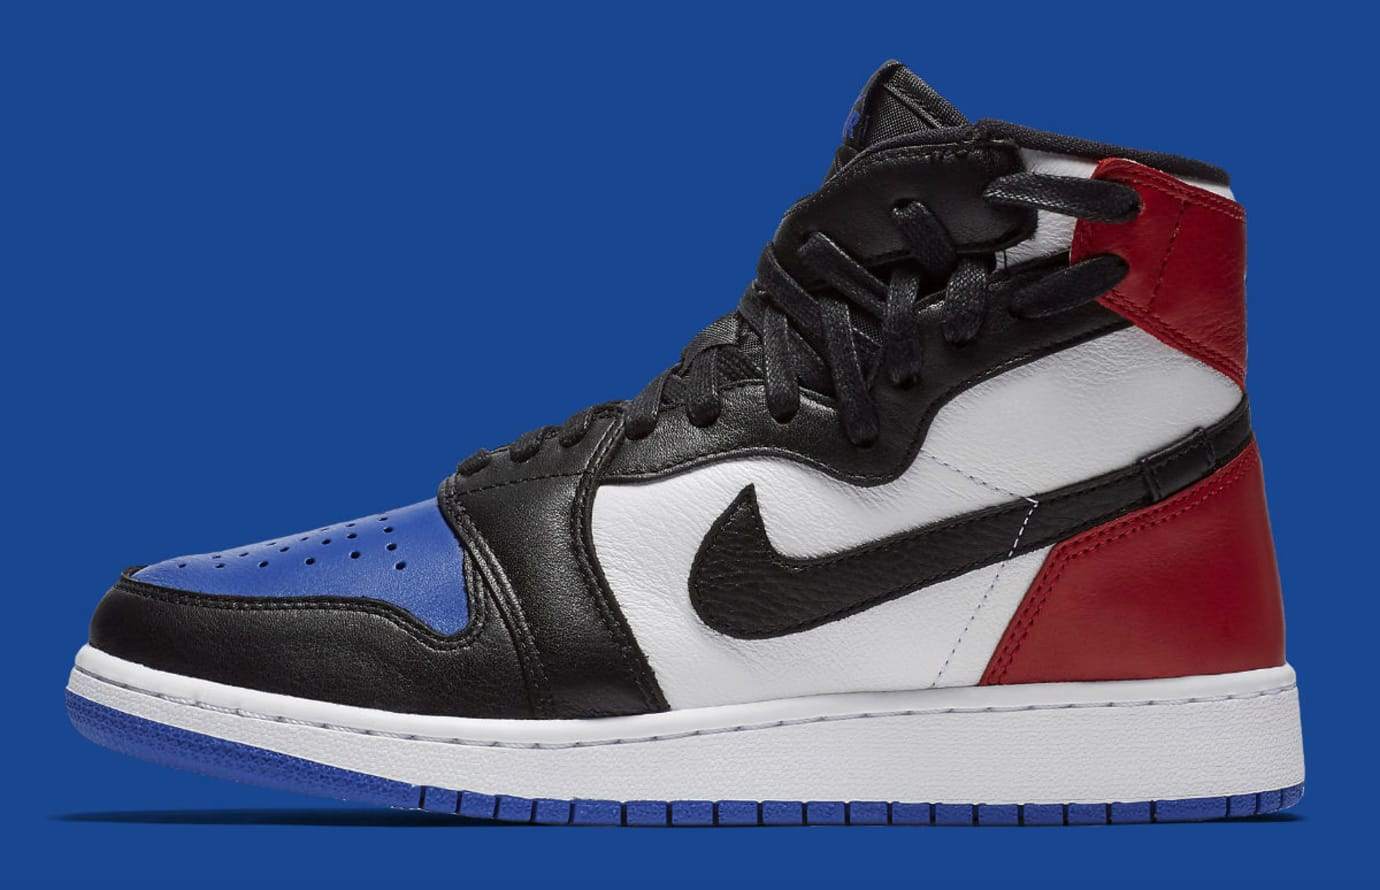 Air Jordan 1 Rebel XX Top 3 Release Date AT4151-001 Profile